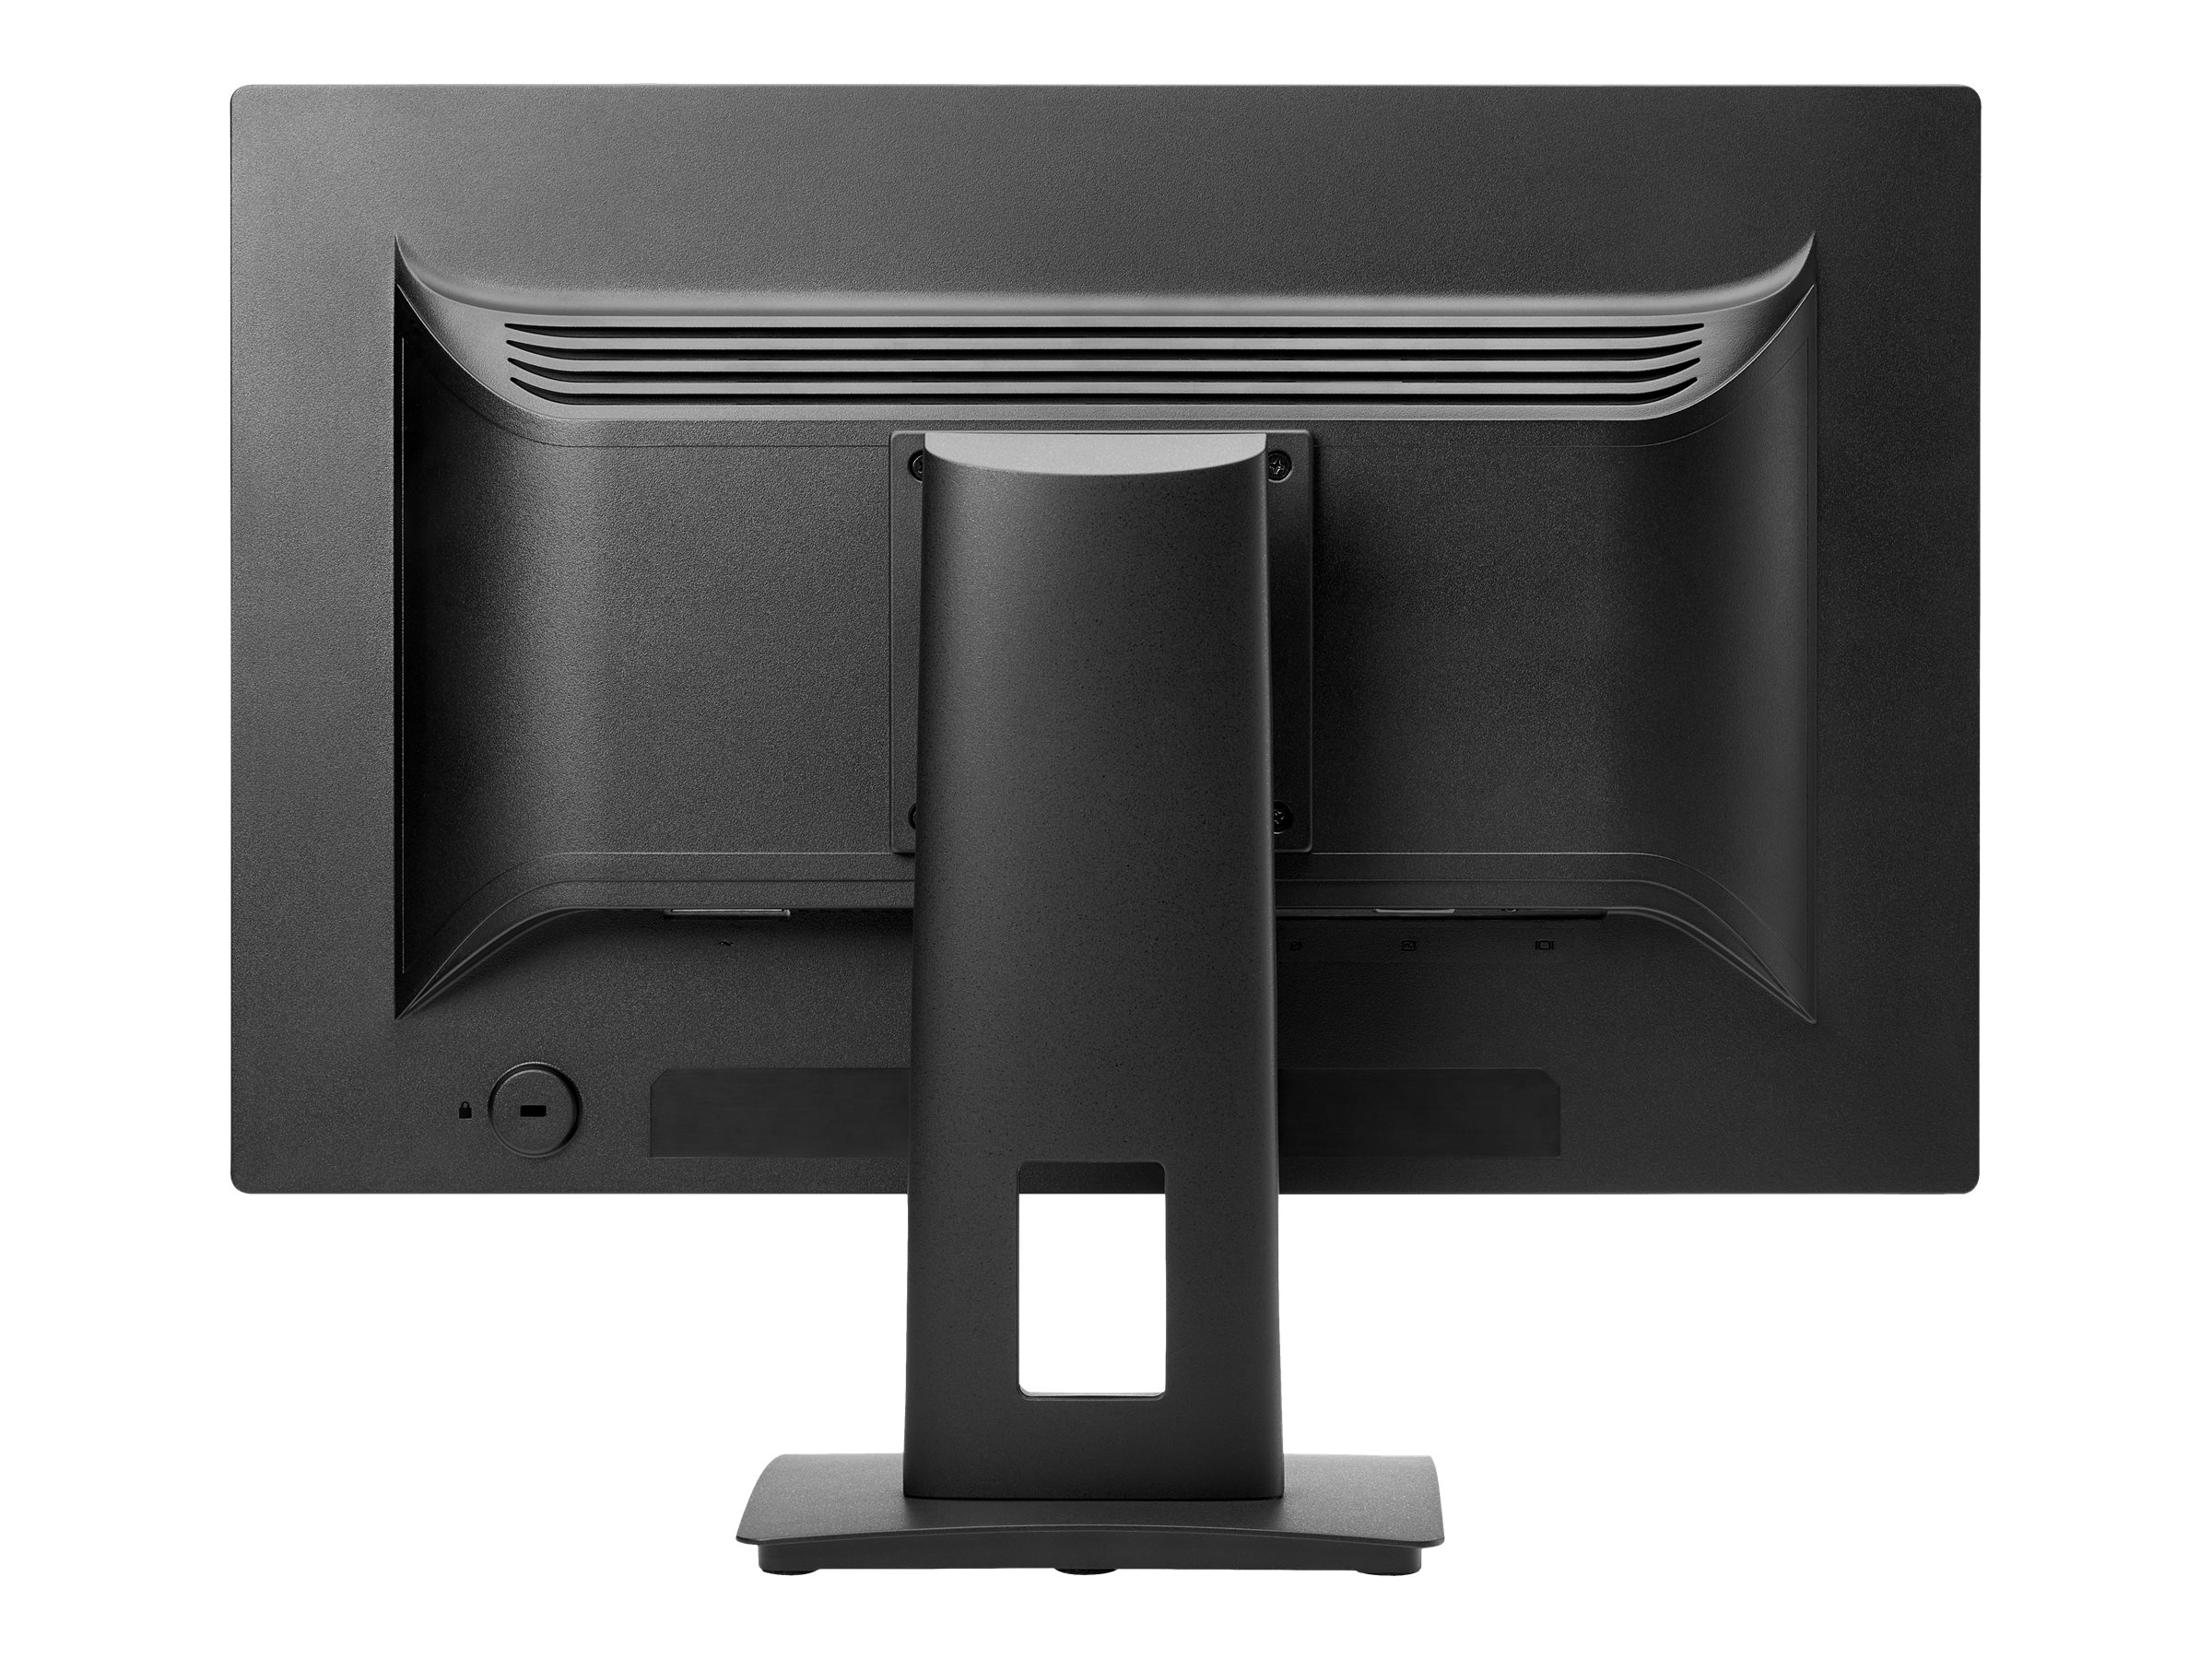 HP 21.5 VH22 Full HD LED-LCD Monitor, Black, V9E67A6#ABA